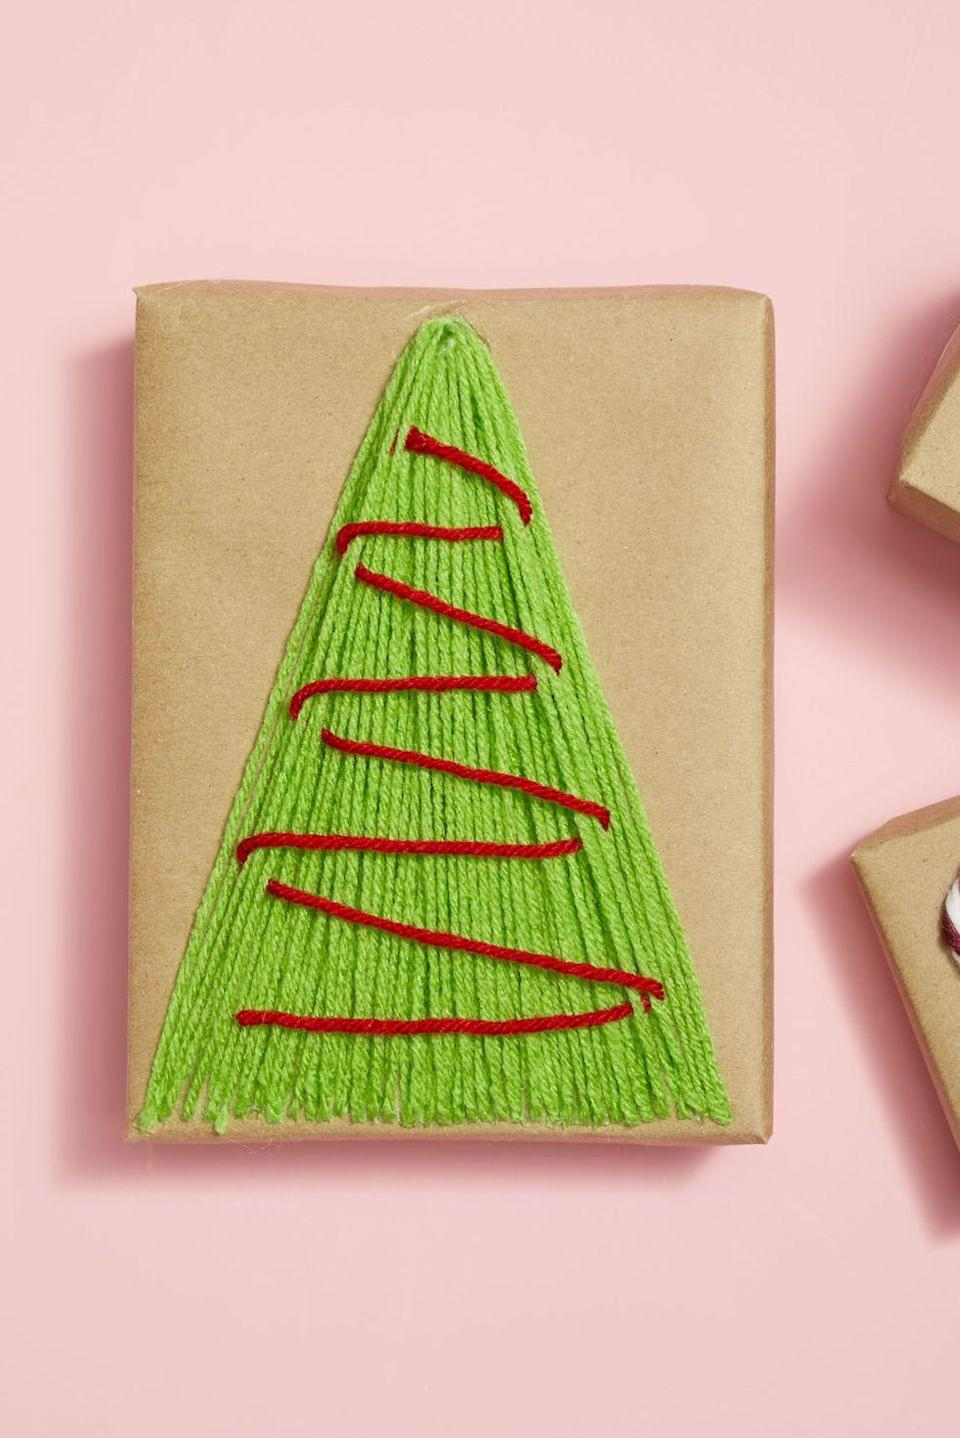 <p>Take advantage of all the extra boxes you have lying around the house and use them for gift-giving. Wrap them in kraft paper and add a tree motif on top out of green and red yarn. </p>